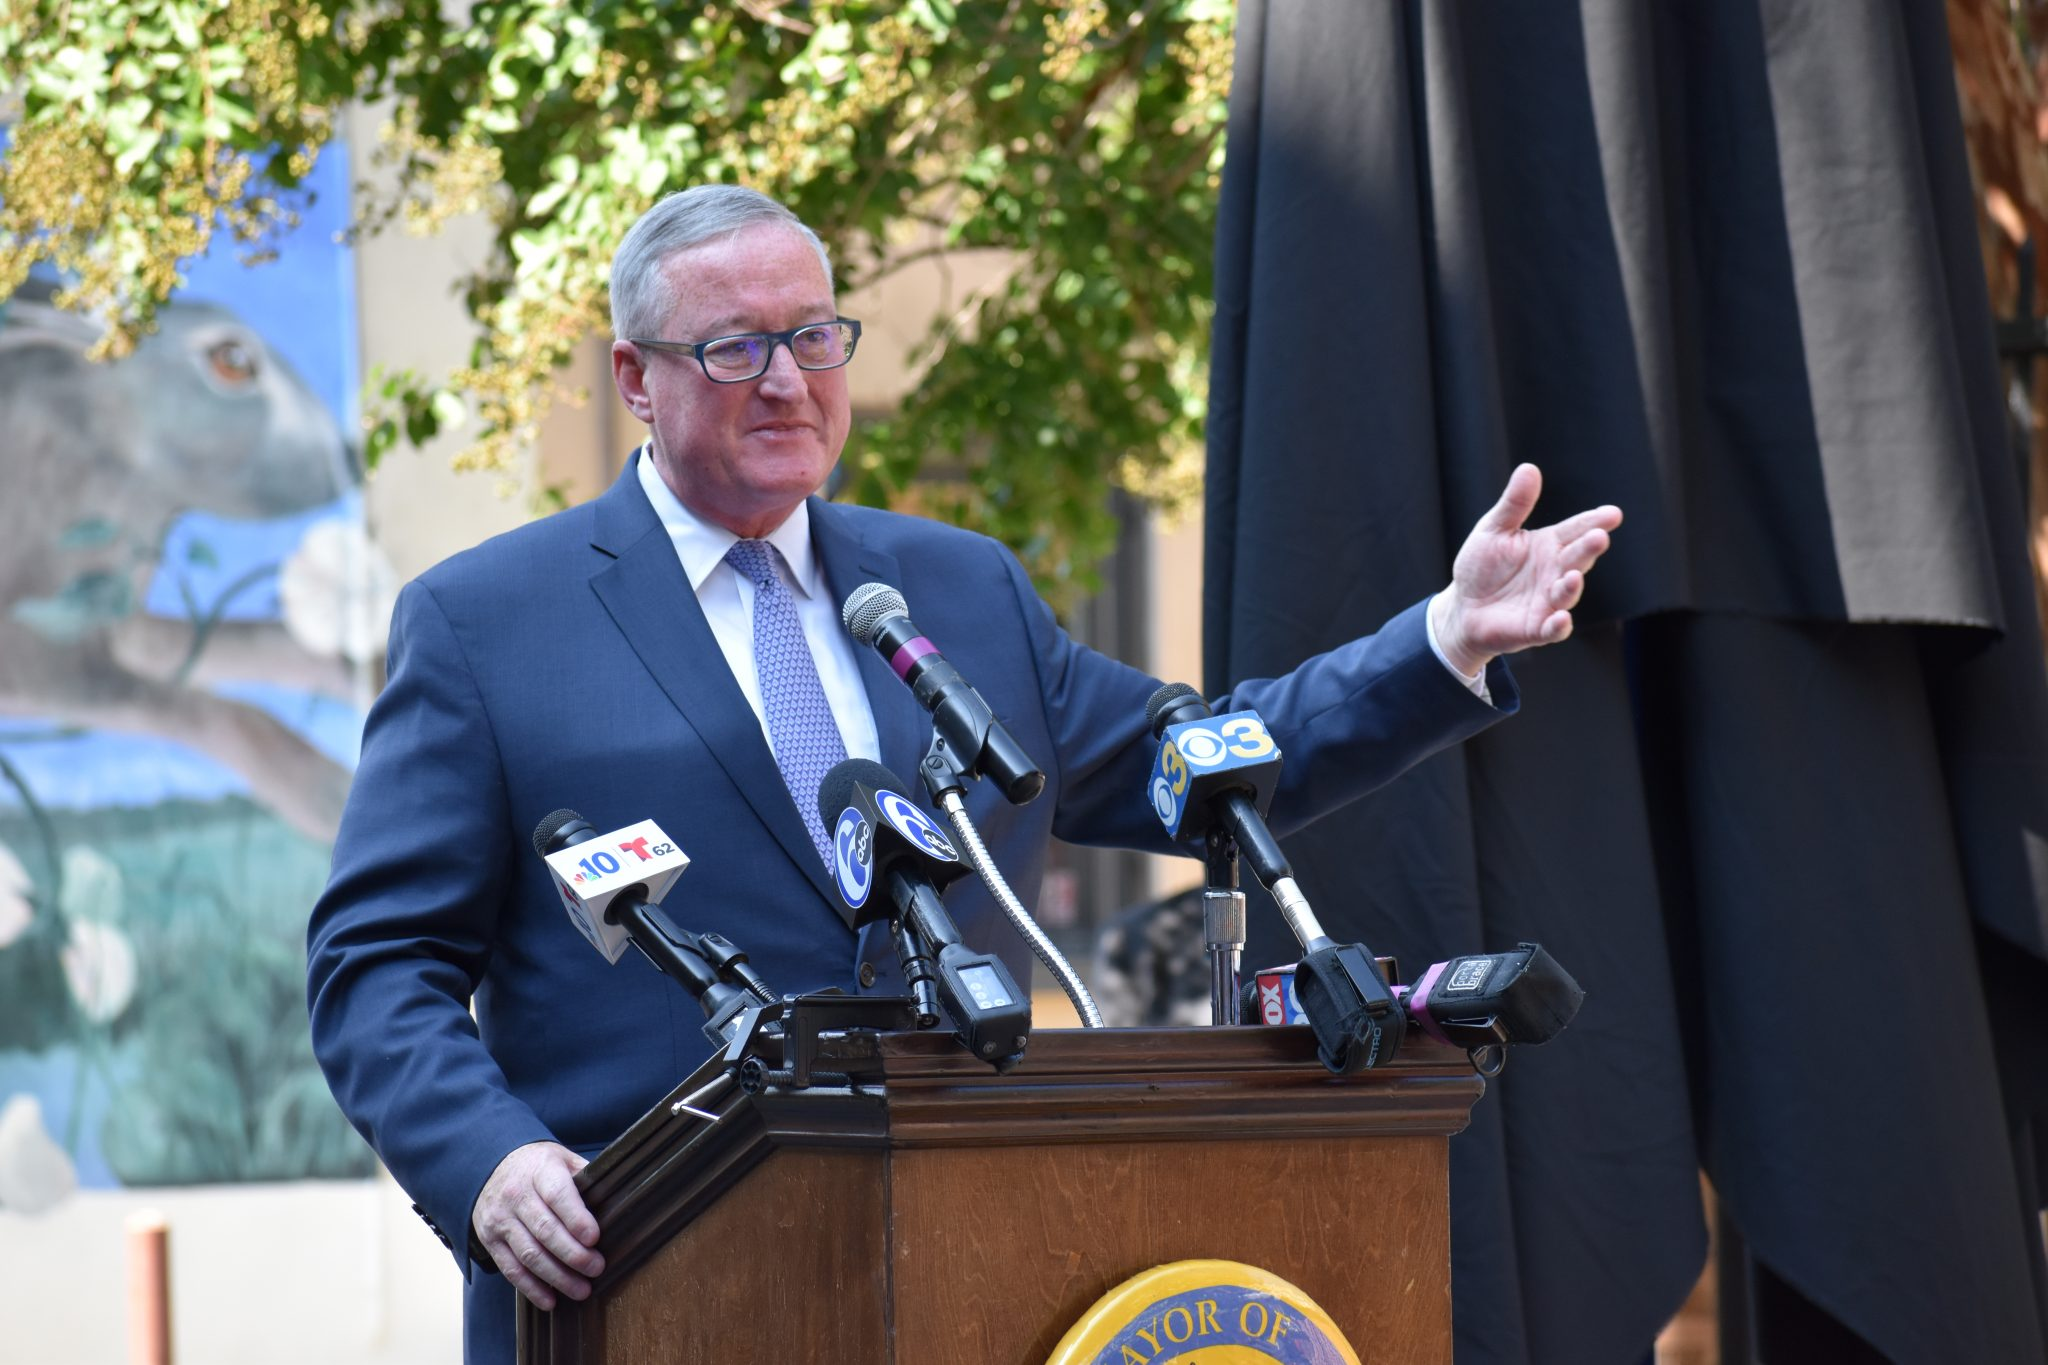 Mayor Kenney: Injection safehouse will be delayed - South Philly Review